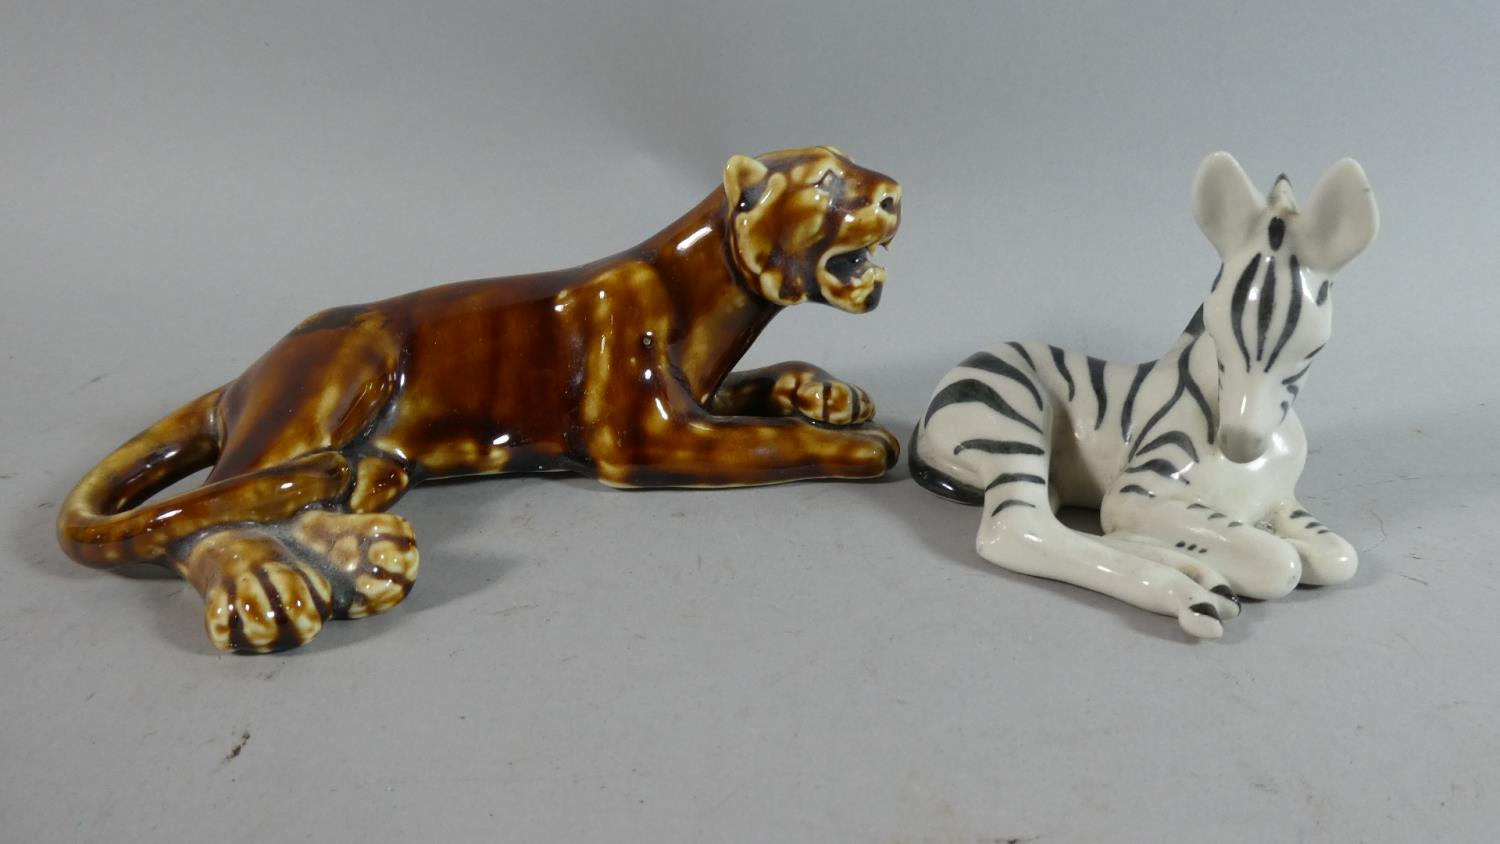 Lot 240 - Two Russian Ceramic Animal Figures, Recumbent Lion and Recumbent Zebra